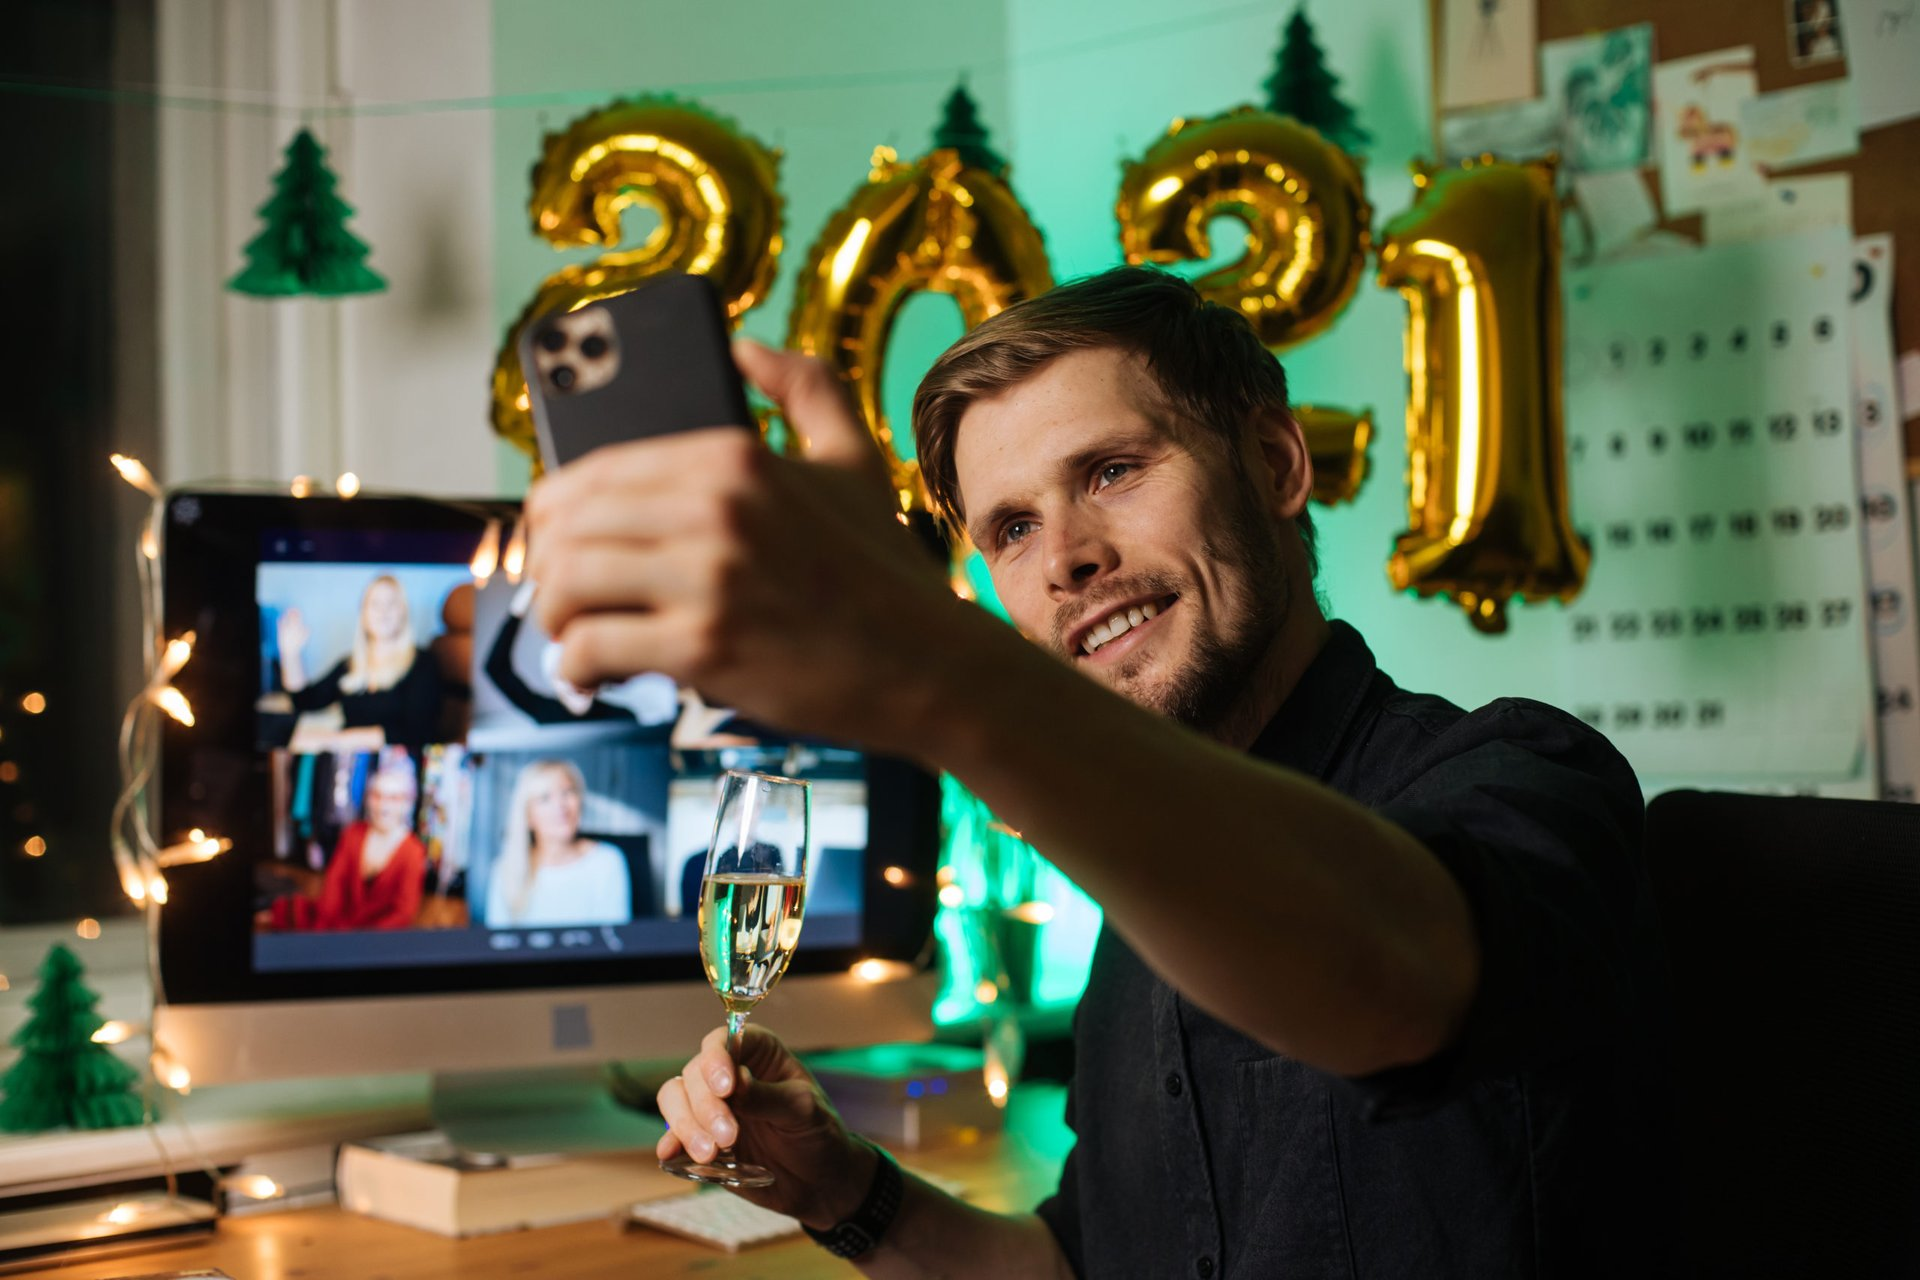 Man using his phone on New Year's Eve